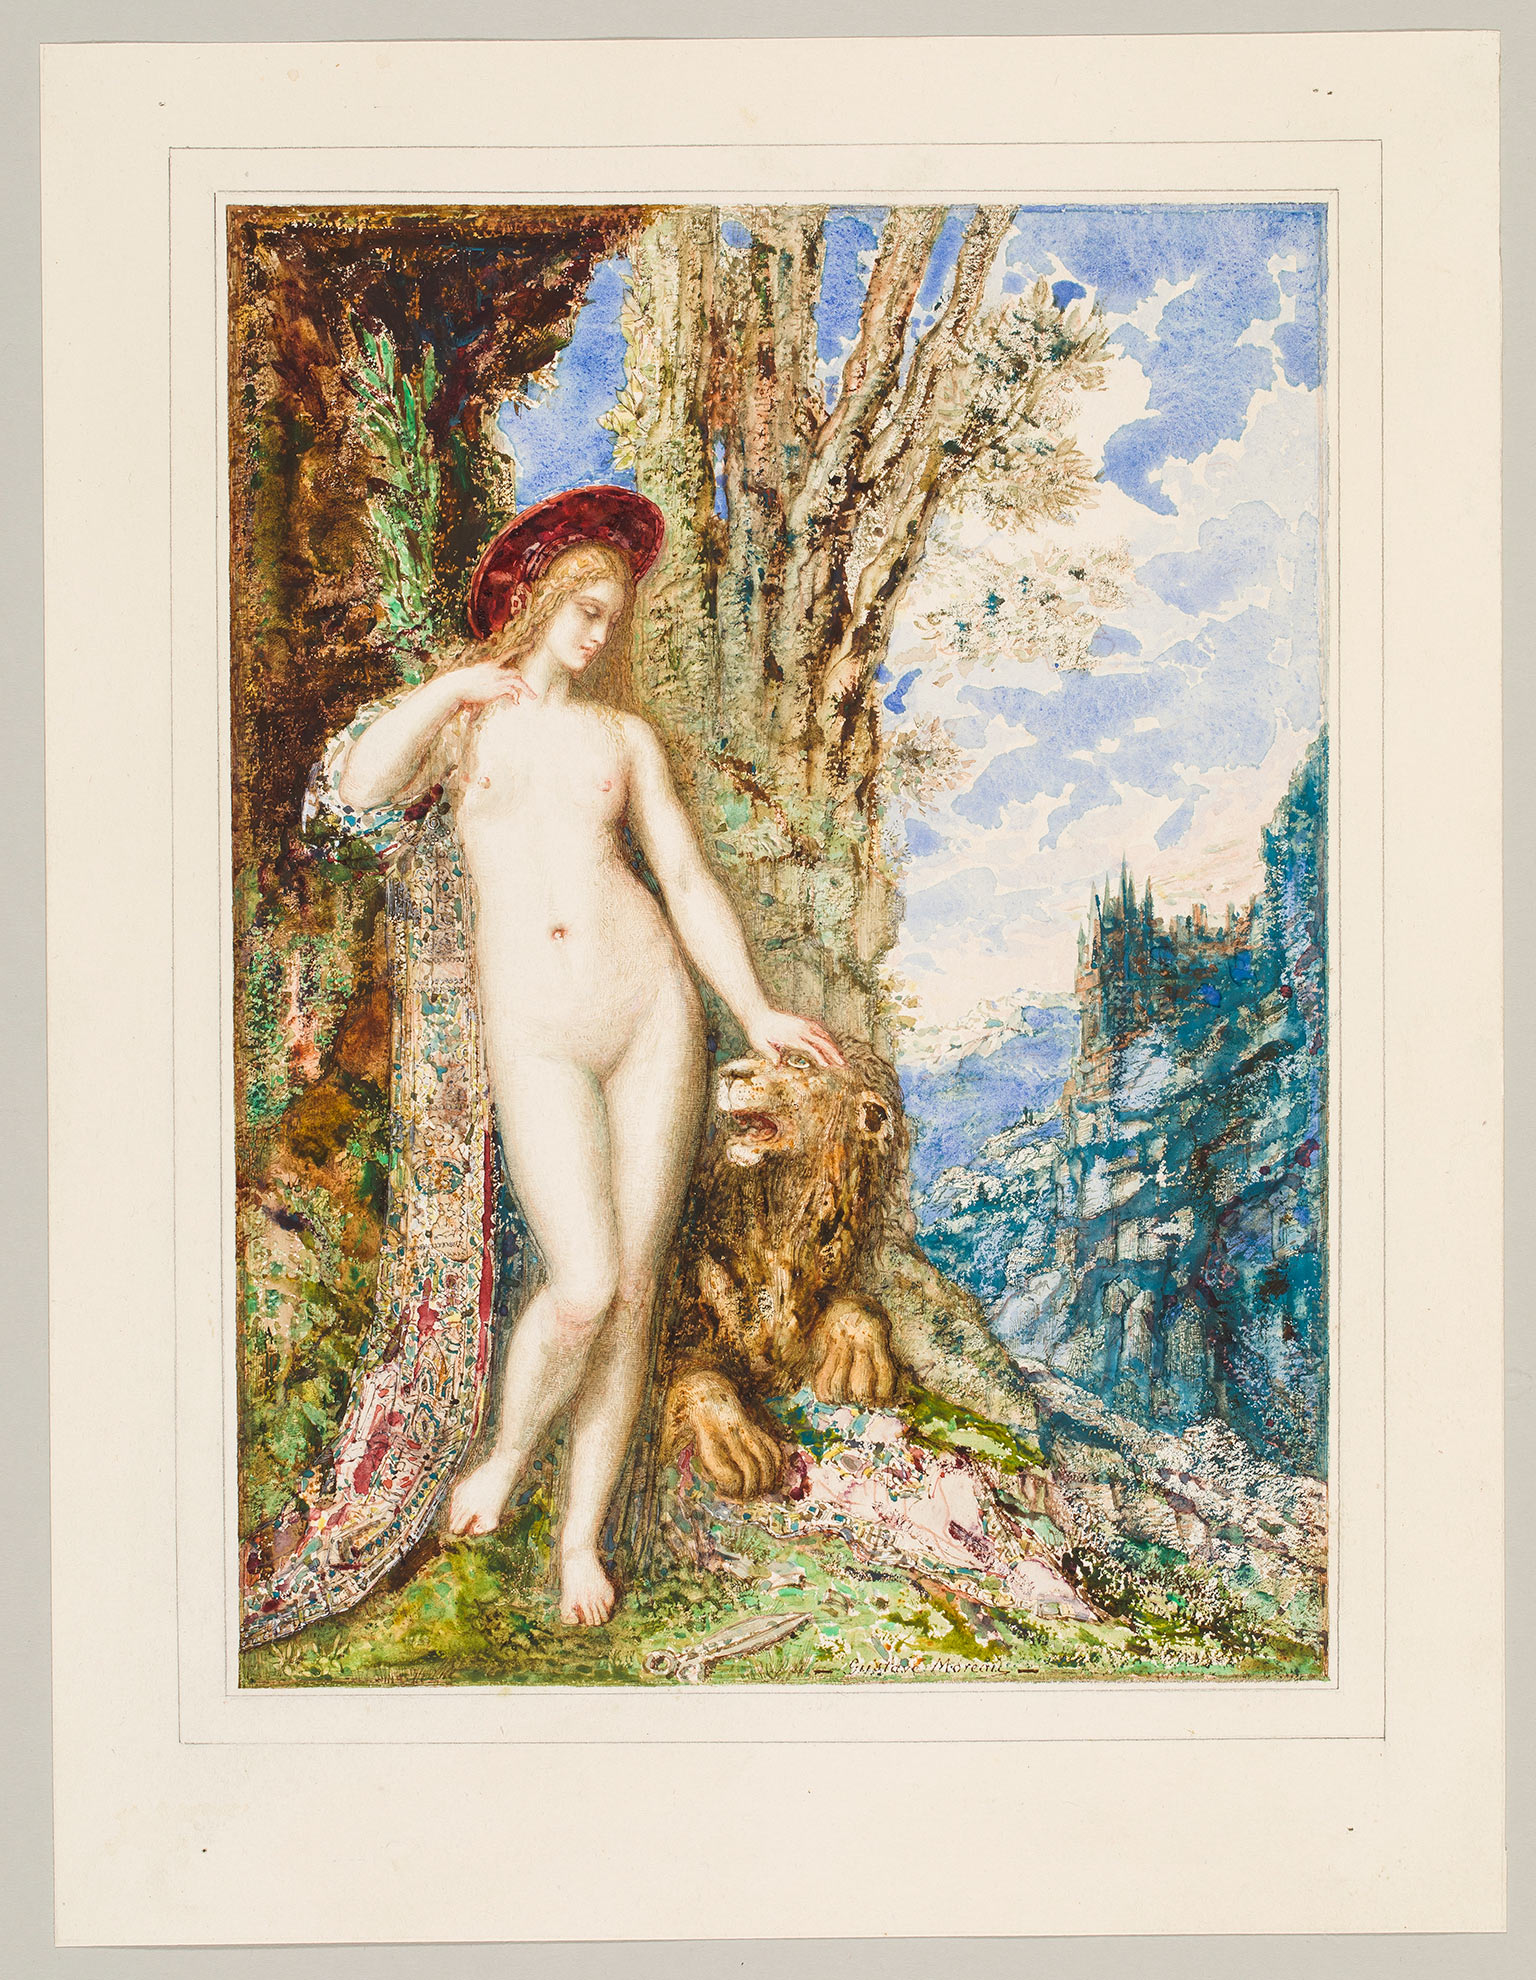 Gustave Moreau, The Lion in Love, 1879-85